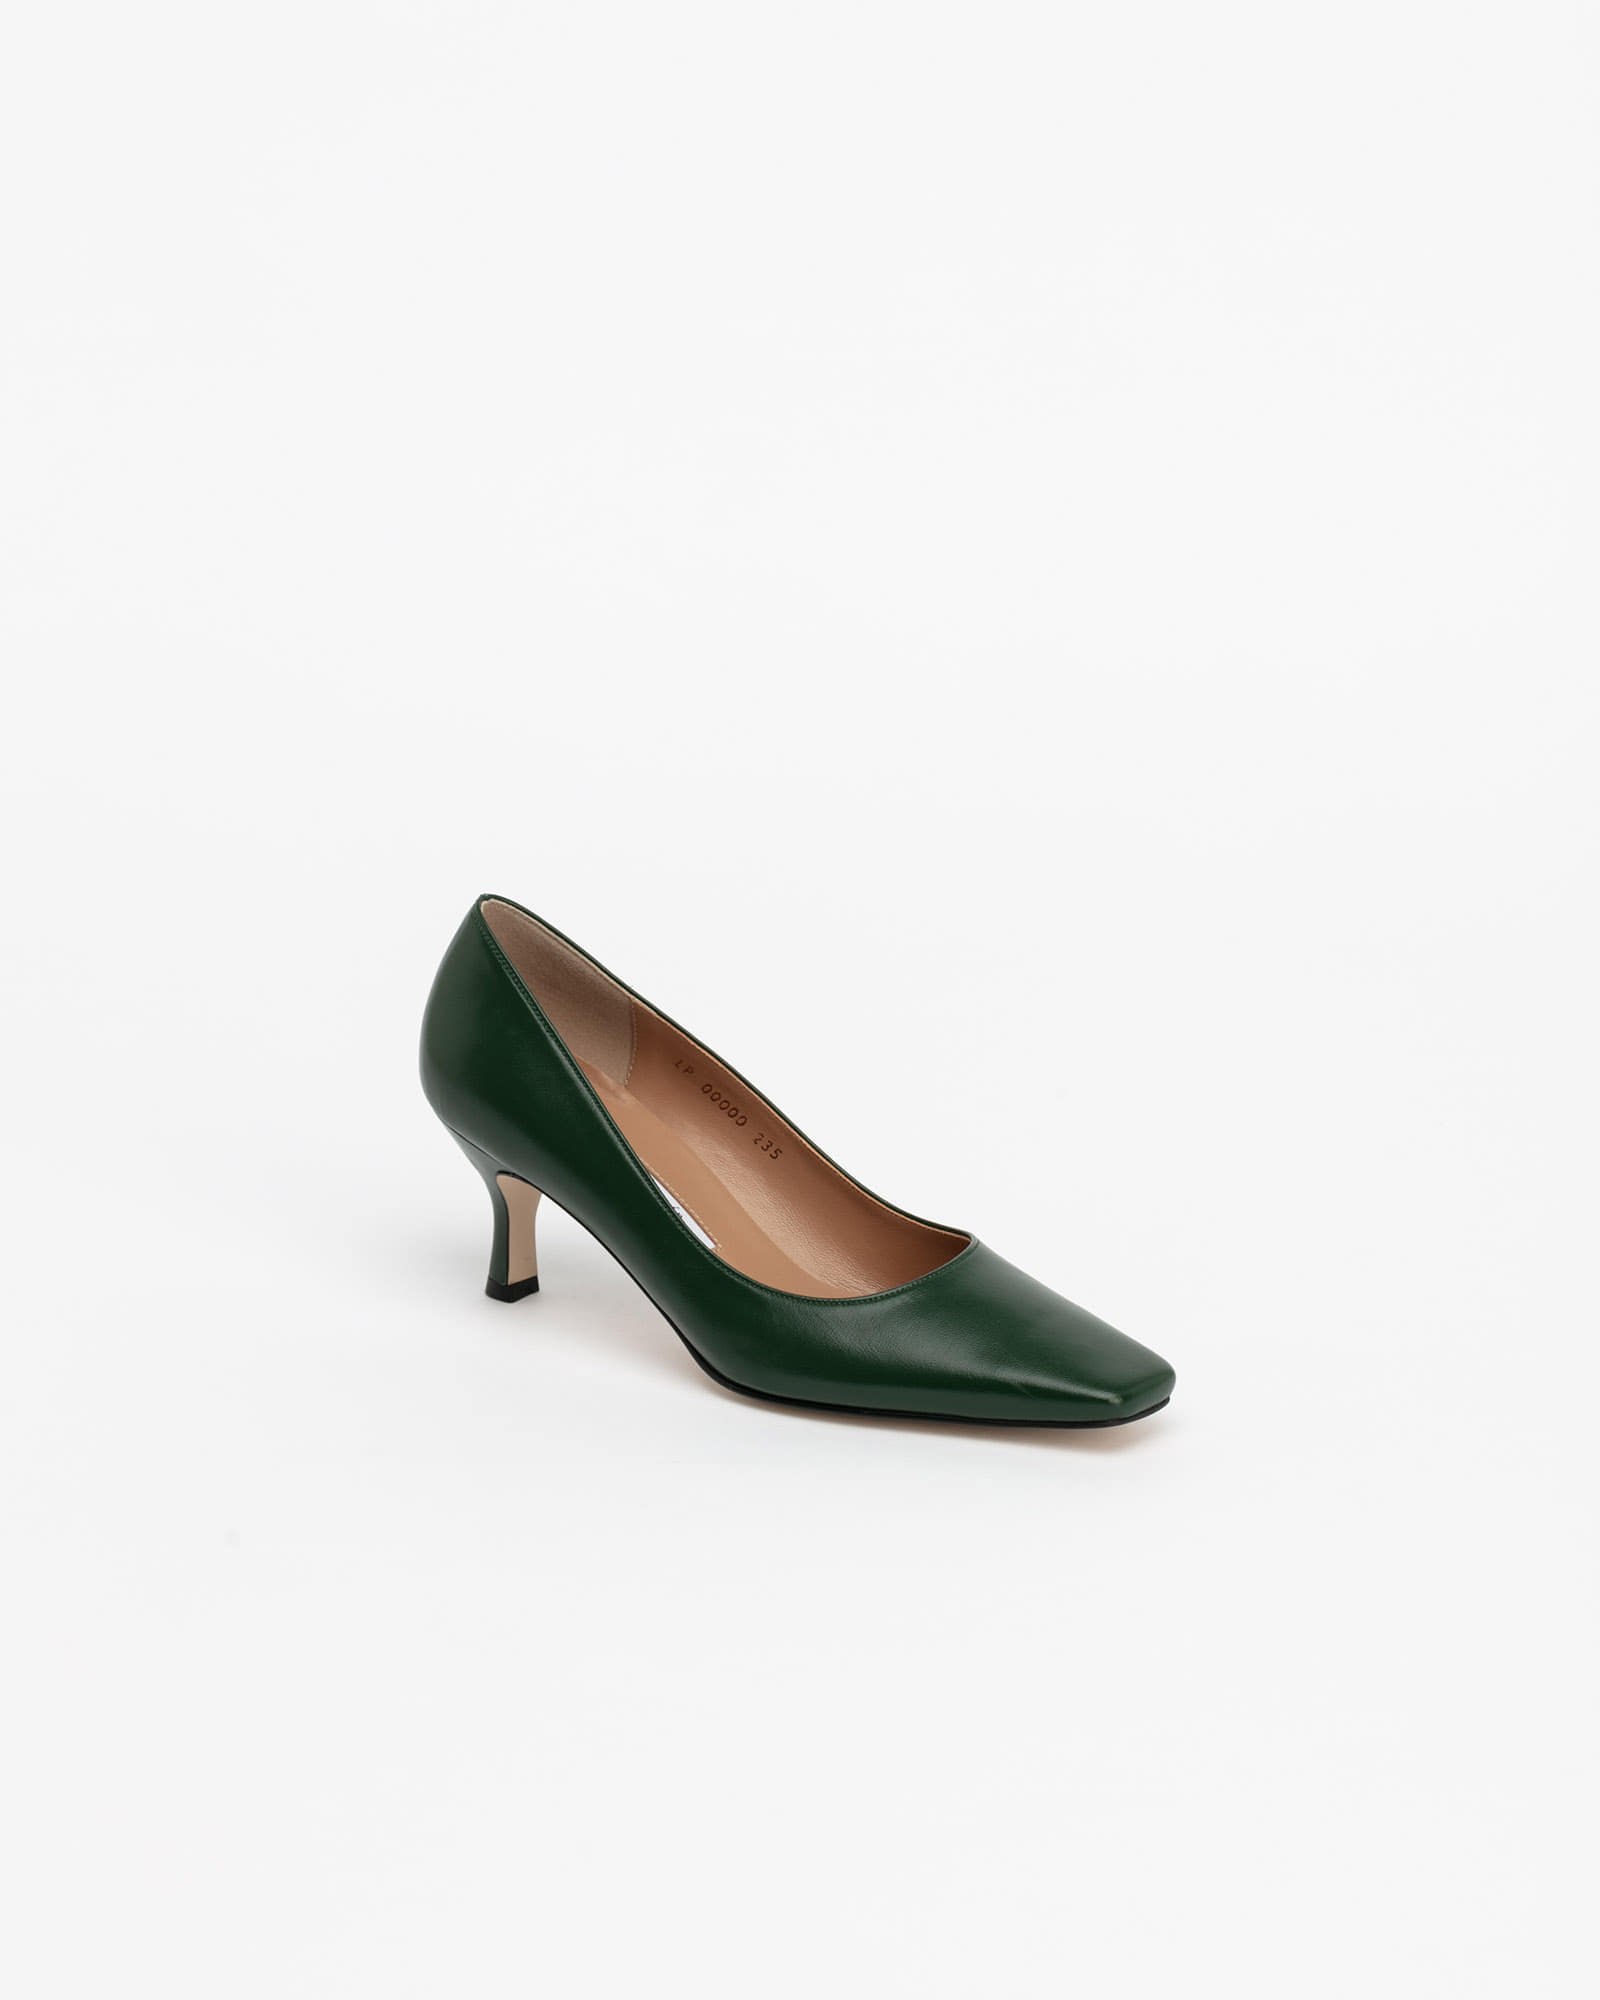 Seraff Pumps in Forest Green